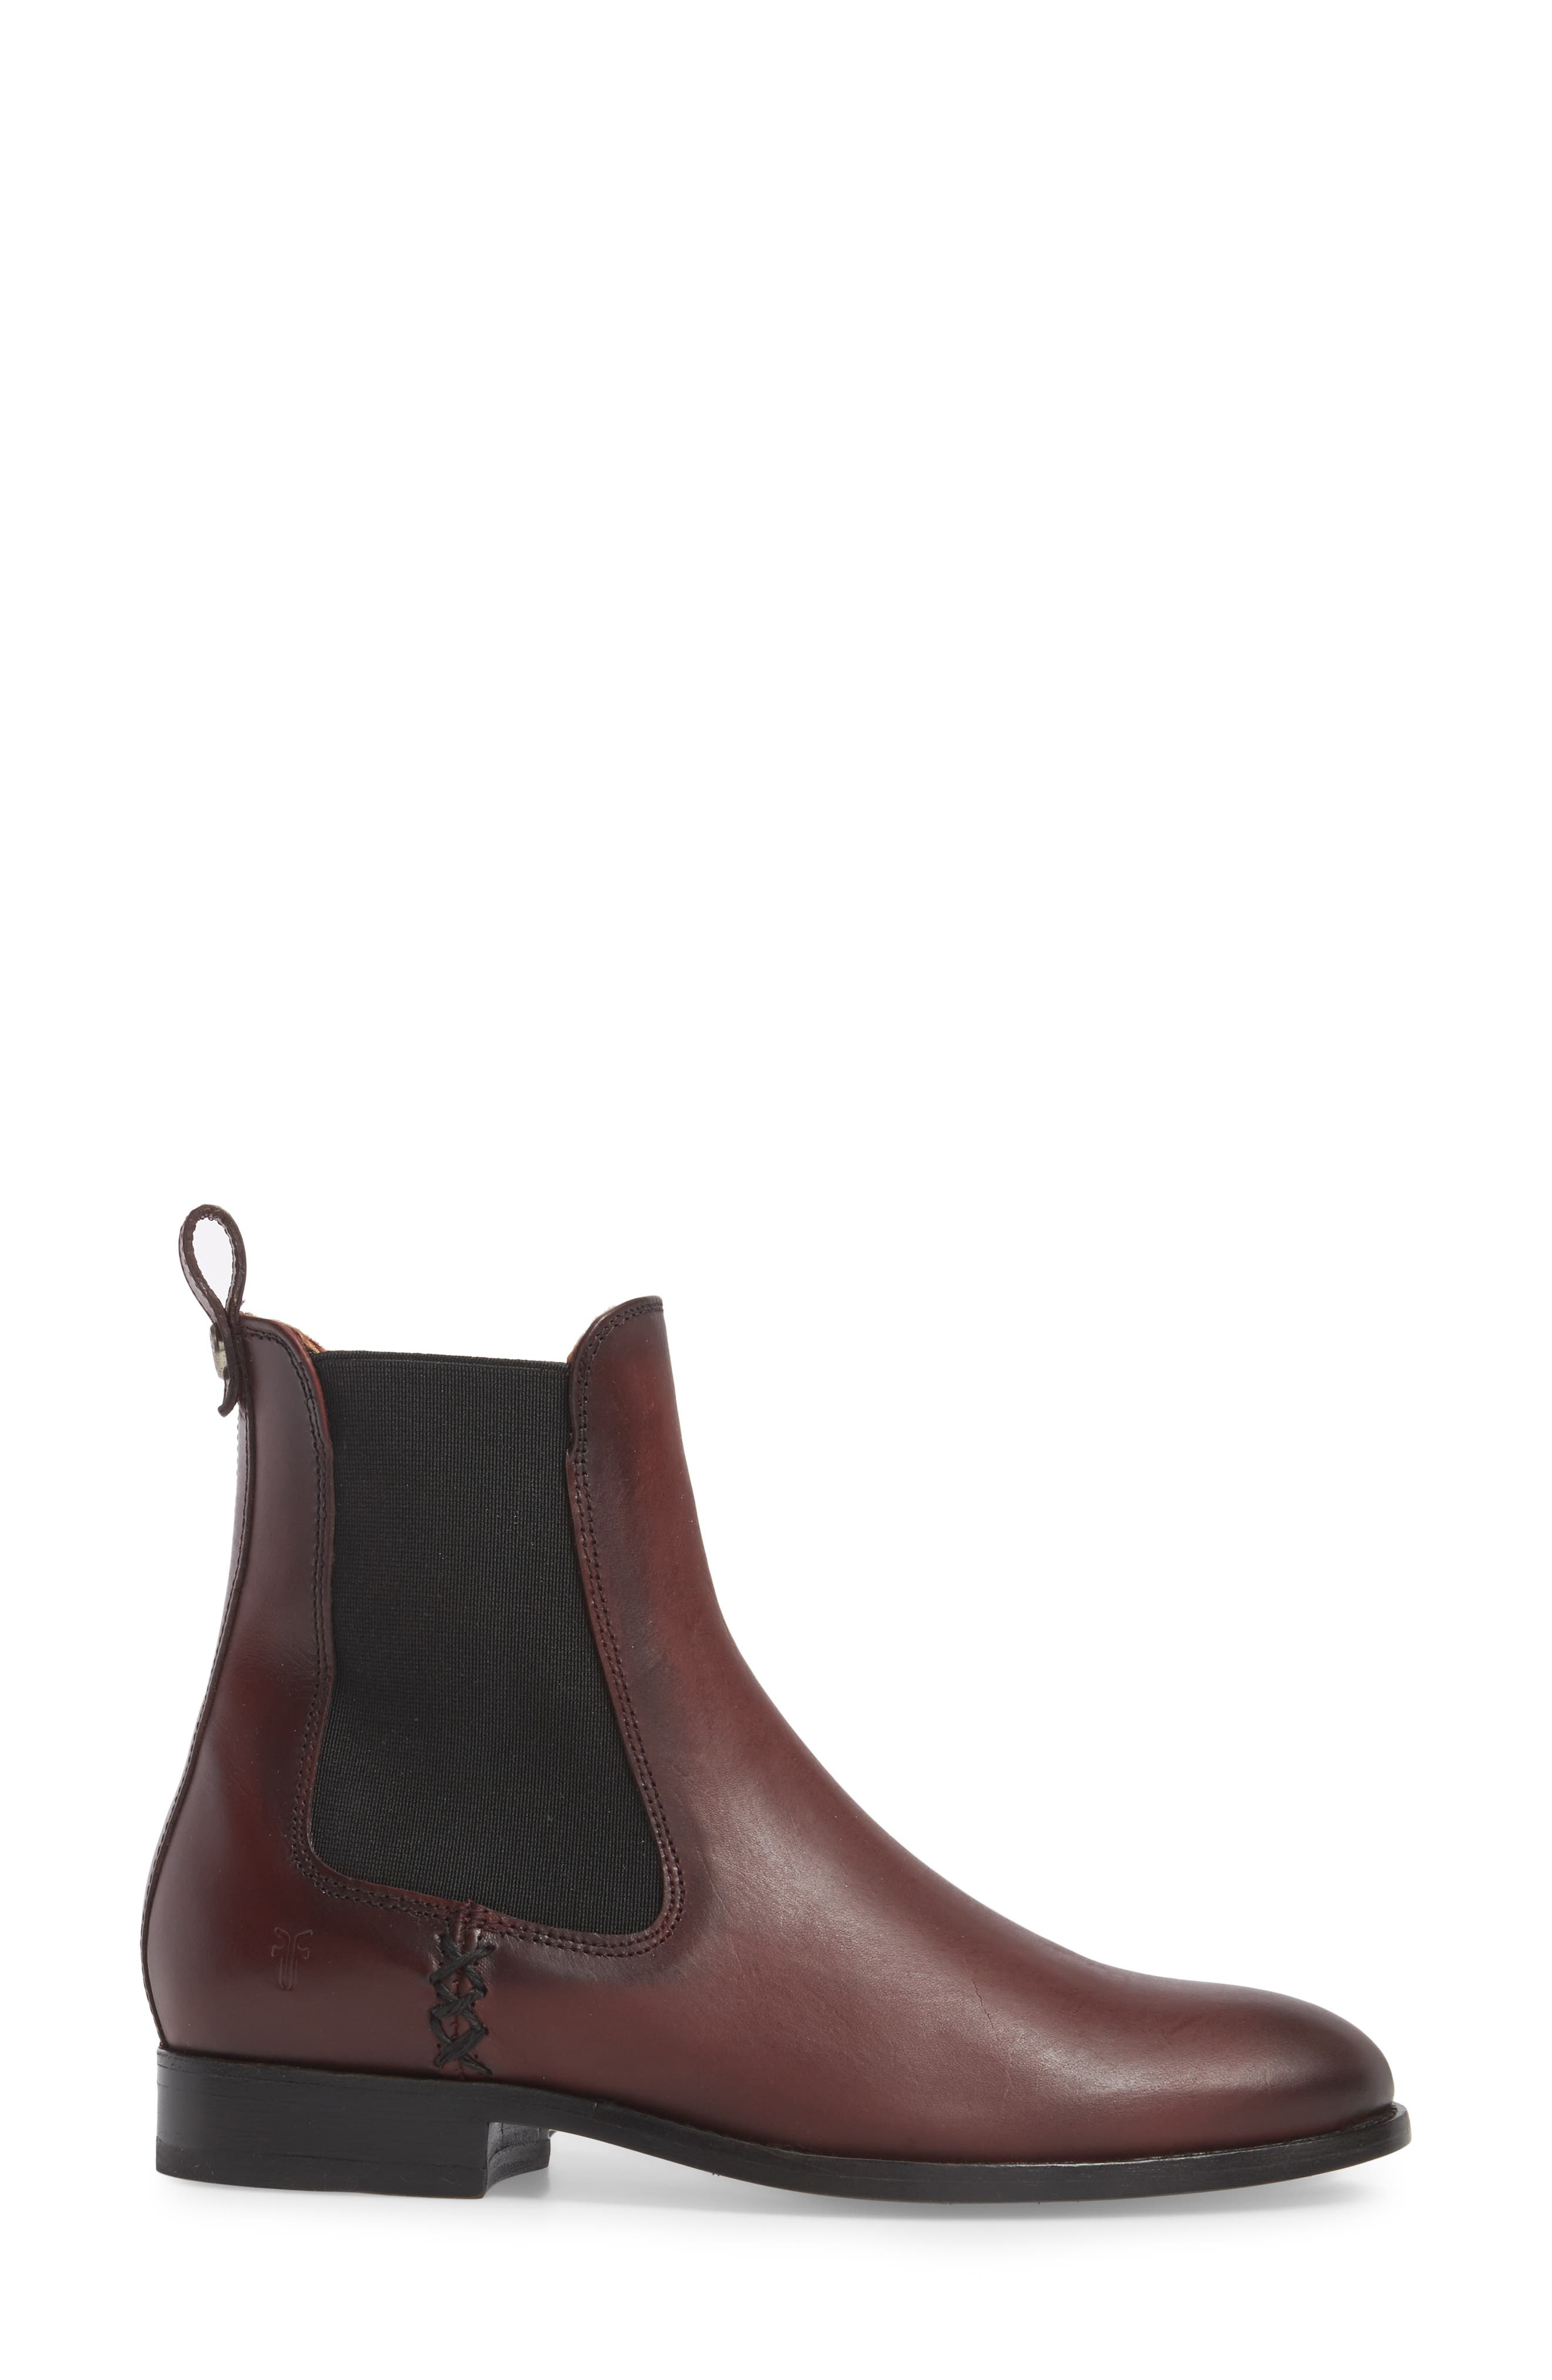 Melissa Chelsea Boot,                             Alternate thumbnail 3, color,                             Wine